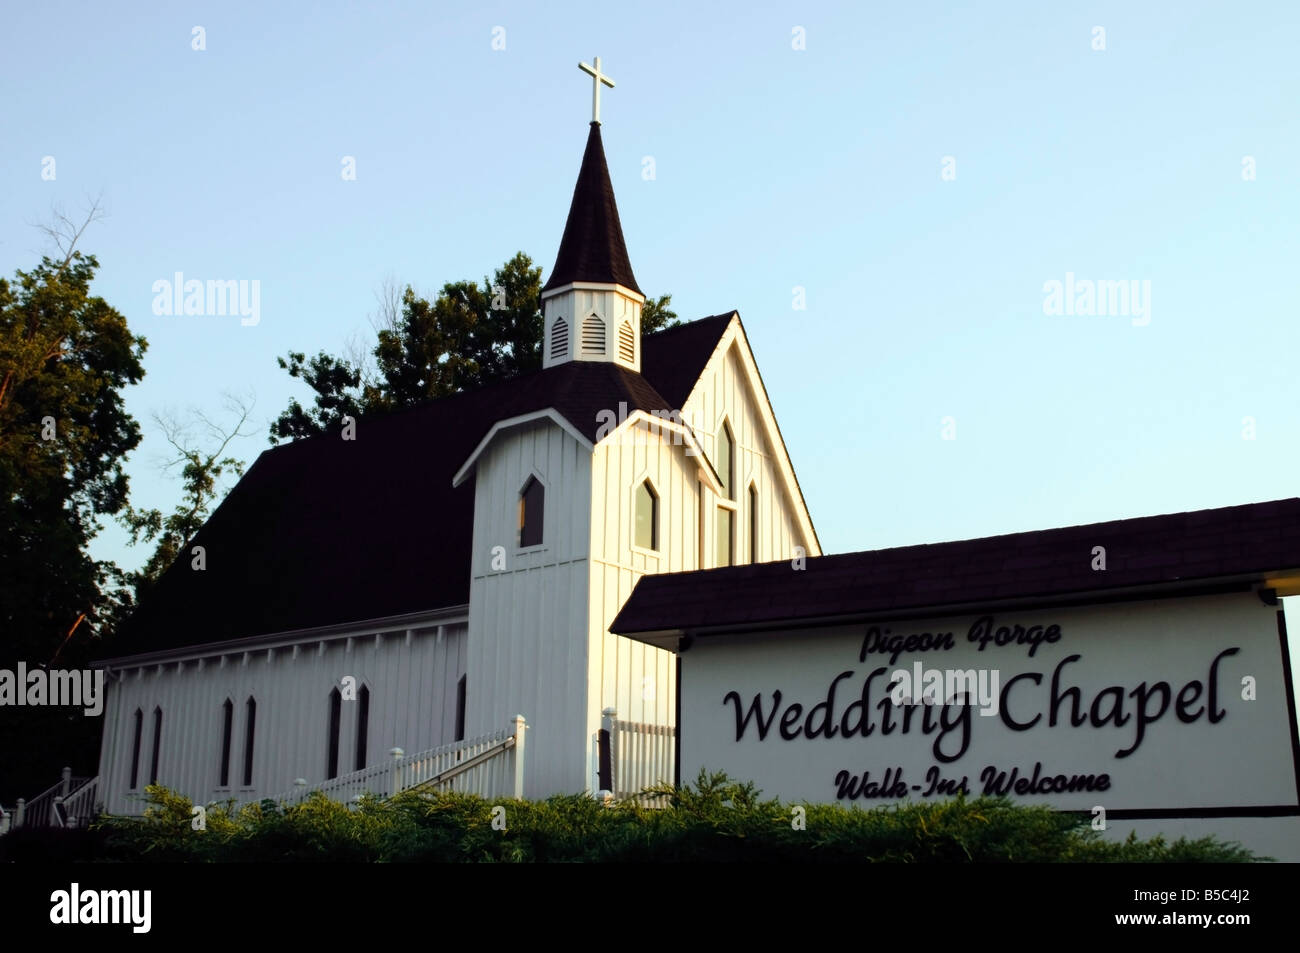 a wedding chapel in pigeon forge tennessee near the smokey mountains